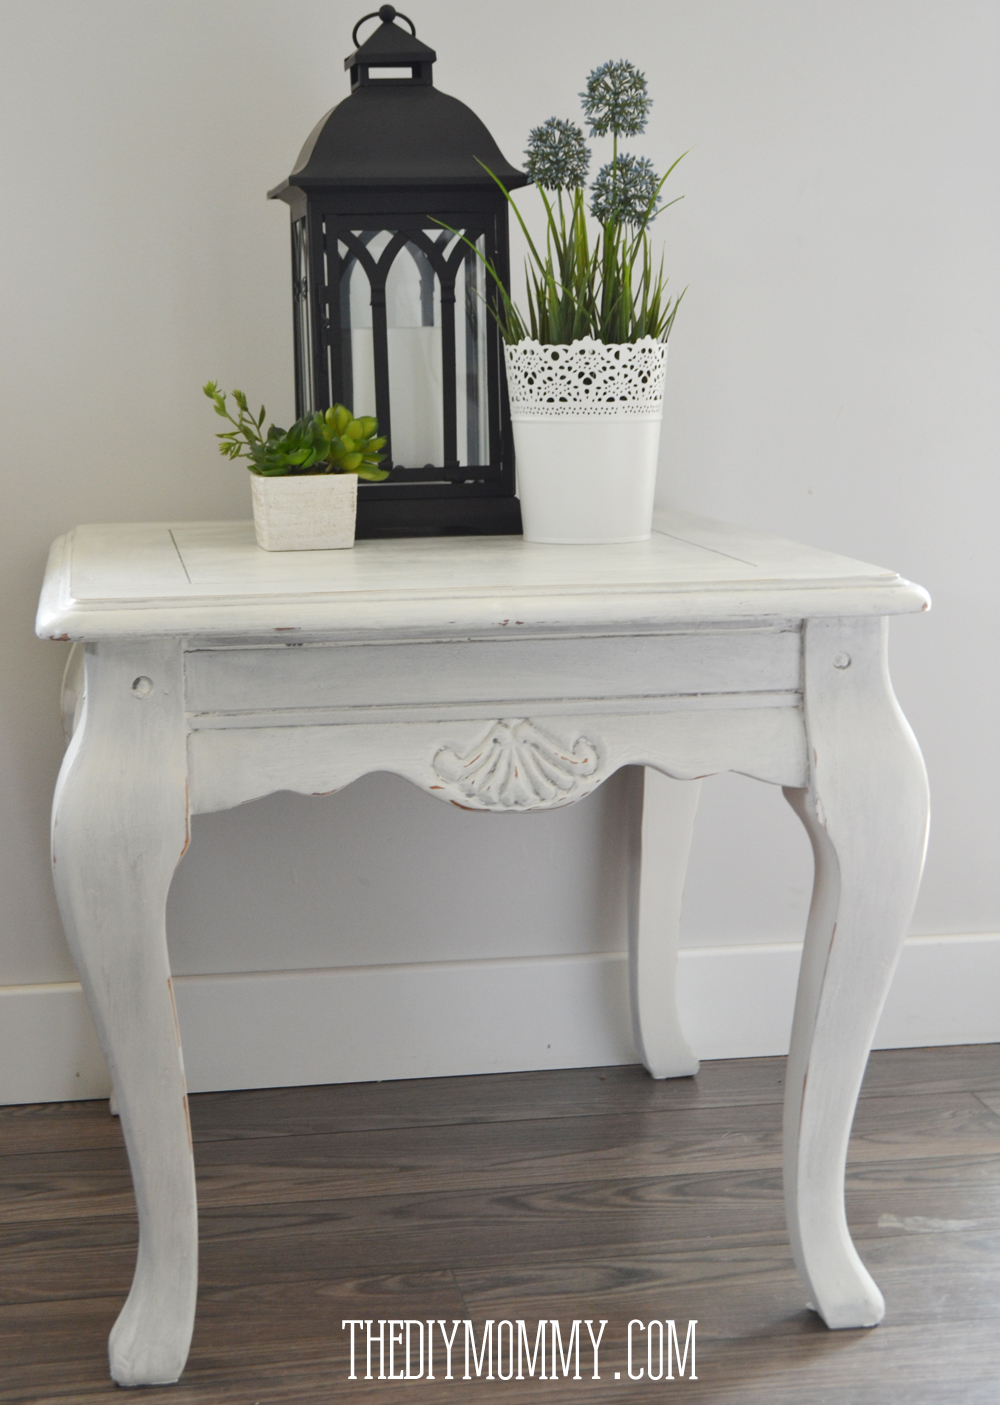 diy end tables that look stylish and unique chalk painted side table wire basket accent patio seating high top pub chairs wooden bedside cabinets mirrored ikea bunk beds mid